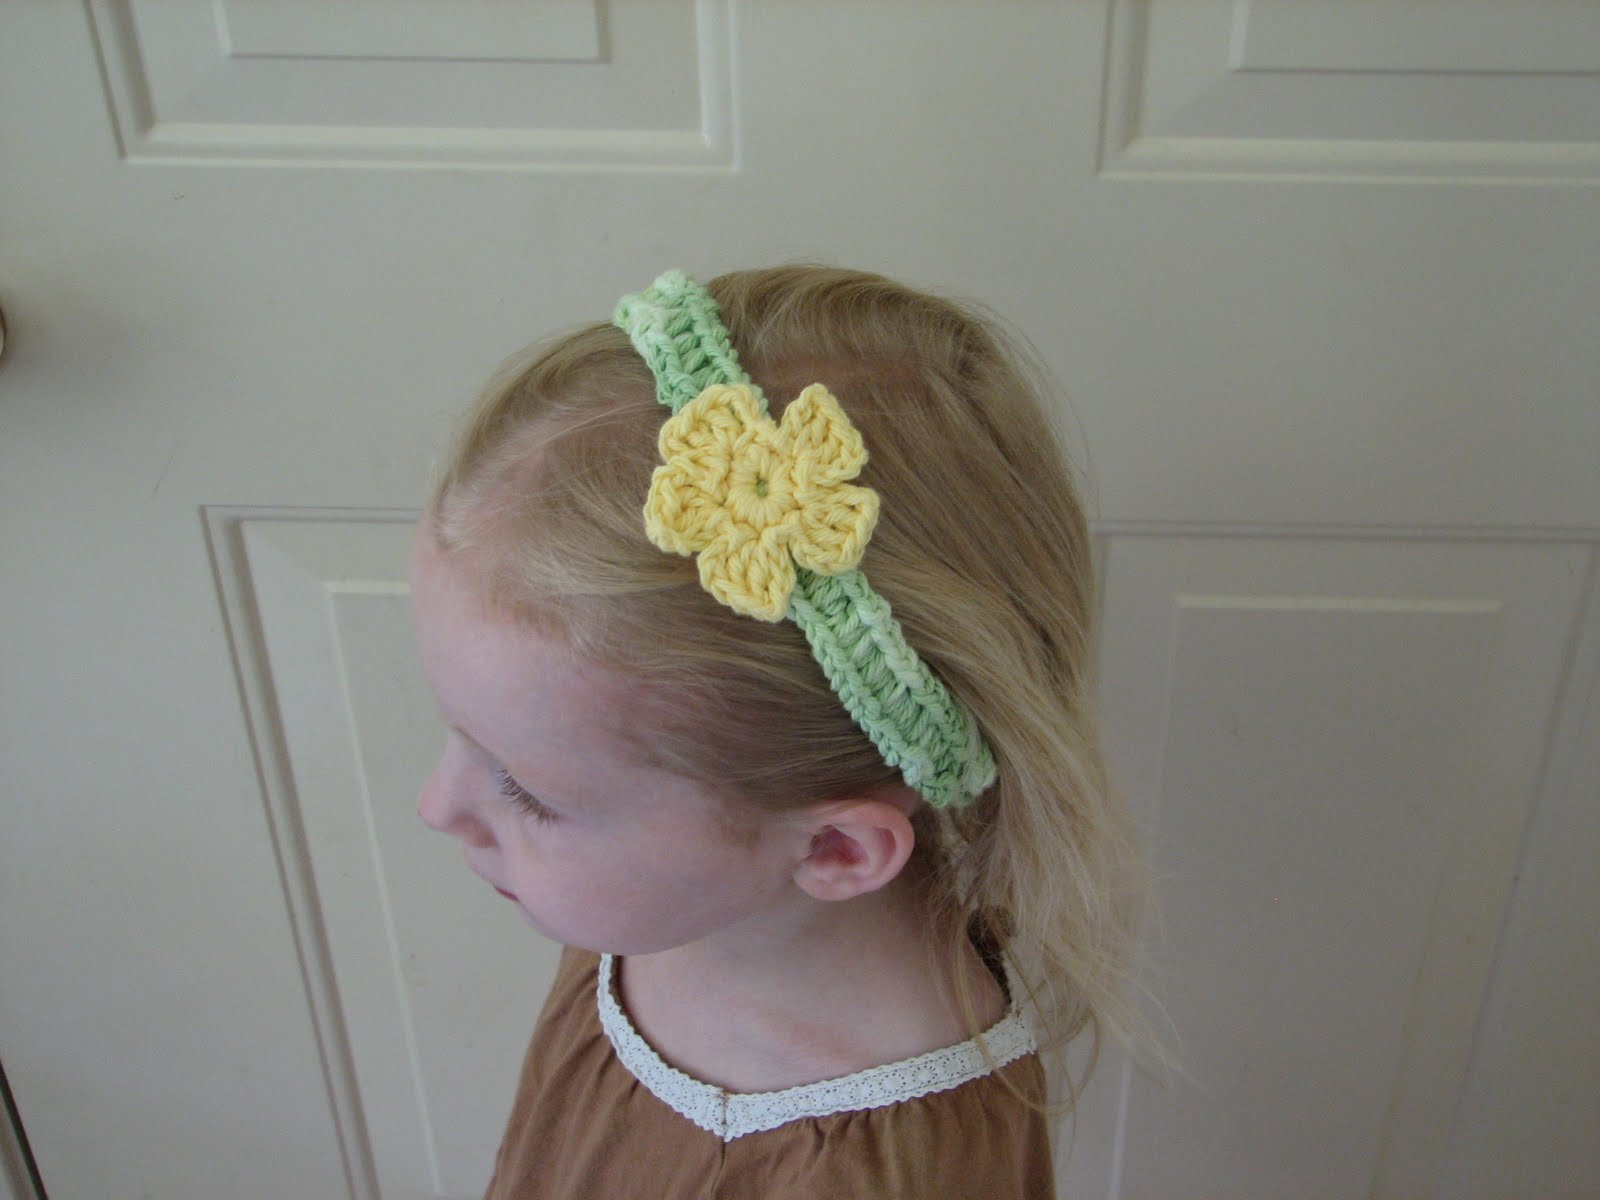 Crochet Wide Headband With Flower Free Pattern : 25 Crochet Headbands + Photos